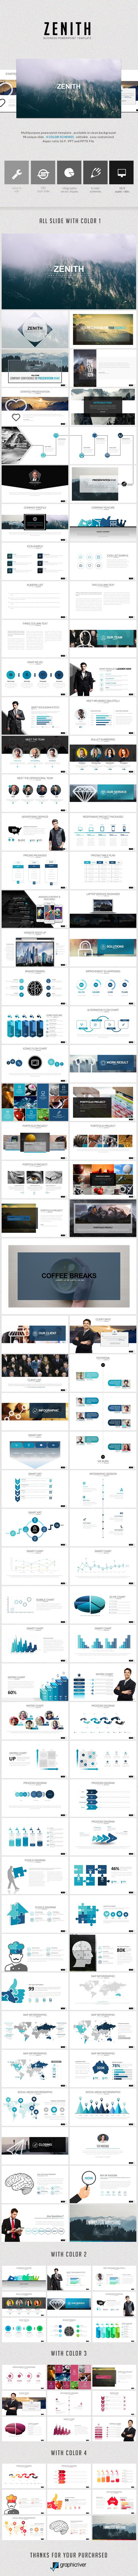 GraphicRiver Zenith Powerpoint Template 20970424